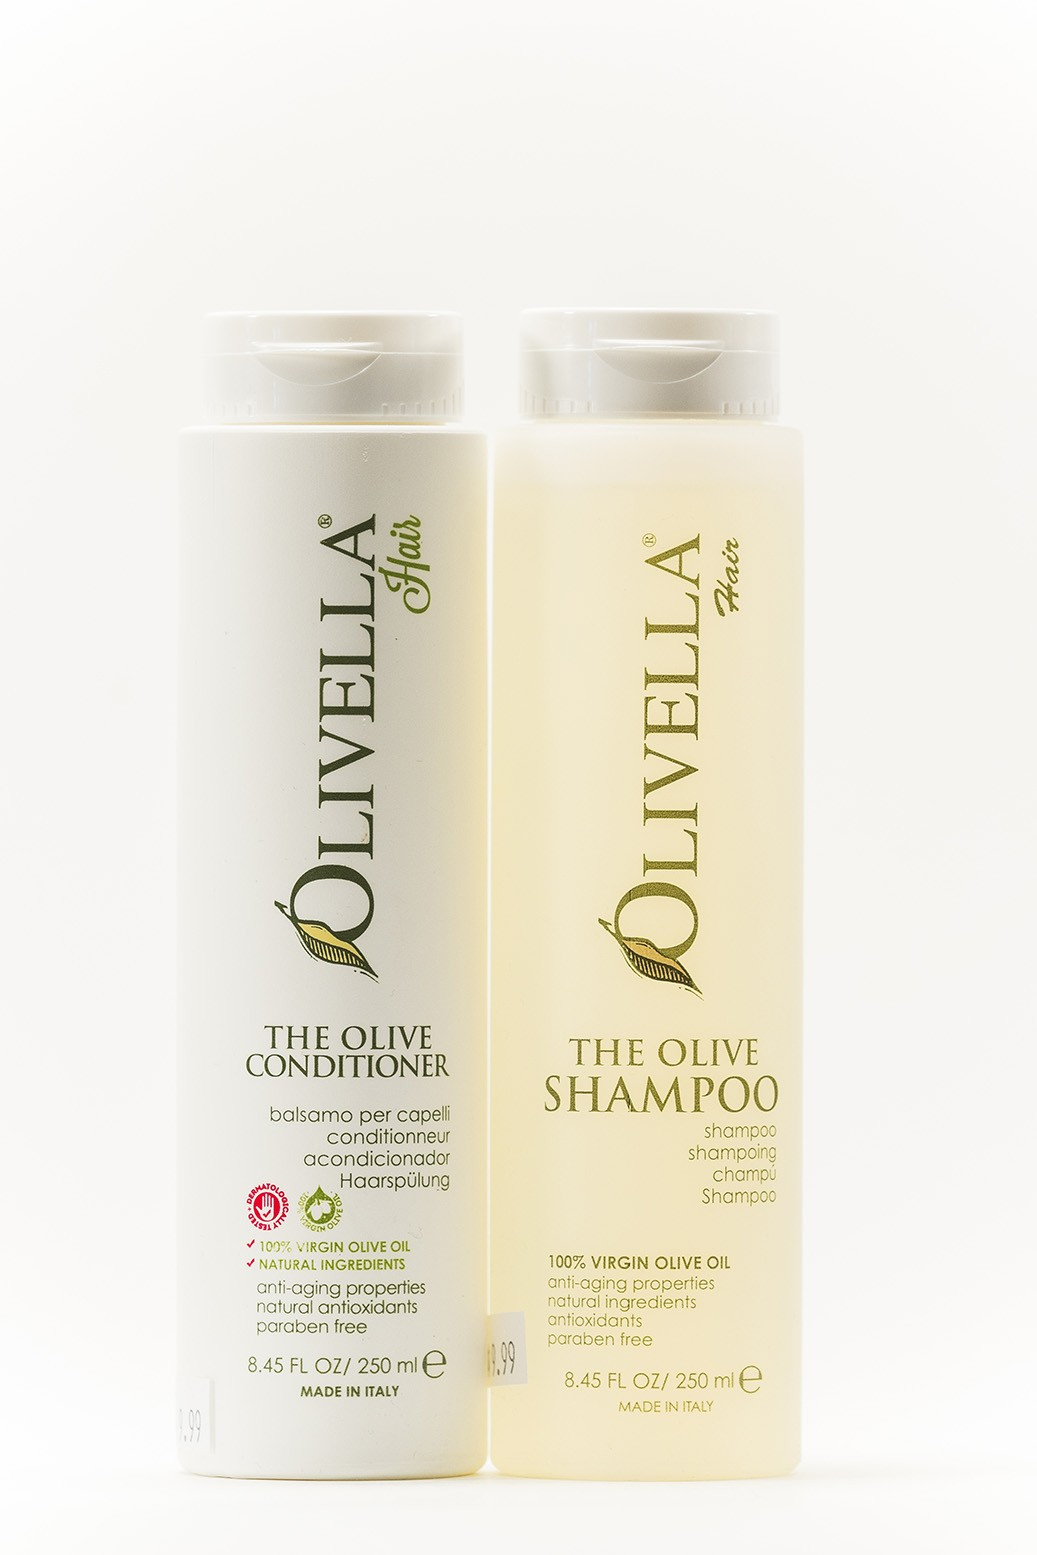 Olivella The Olive Shampoo